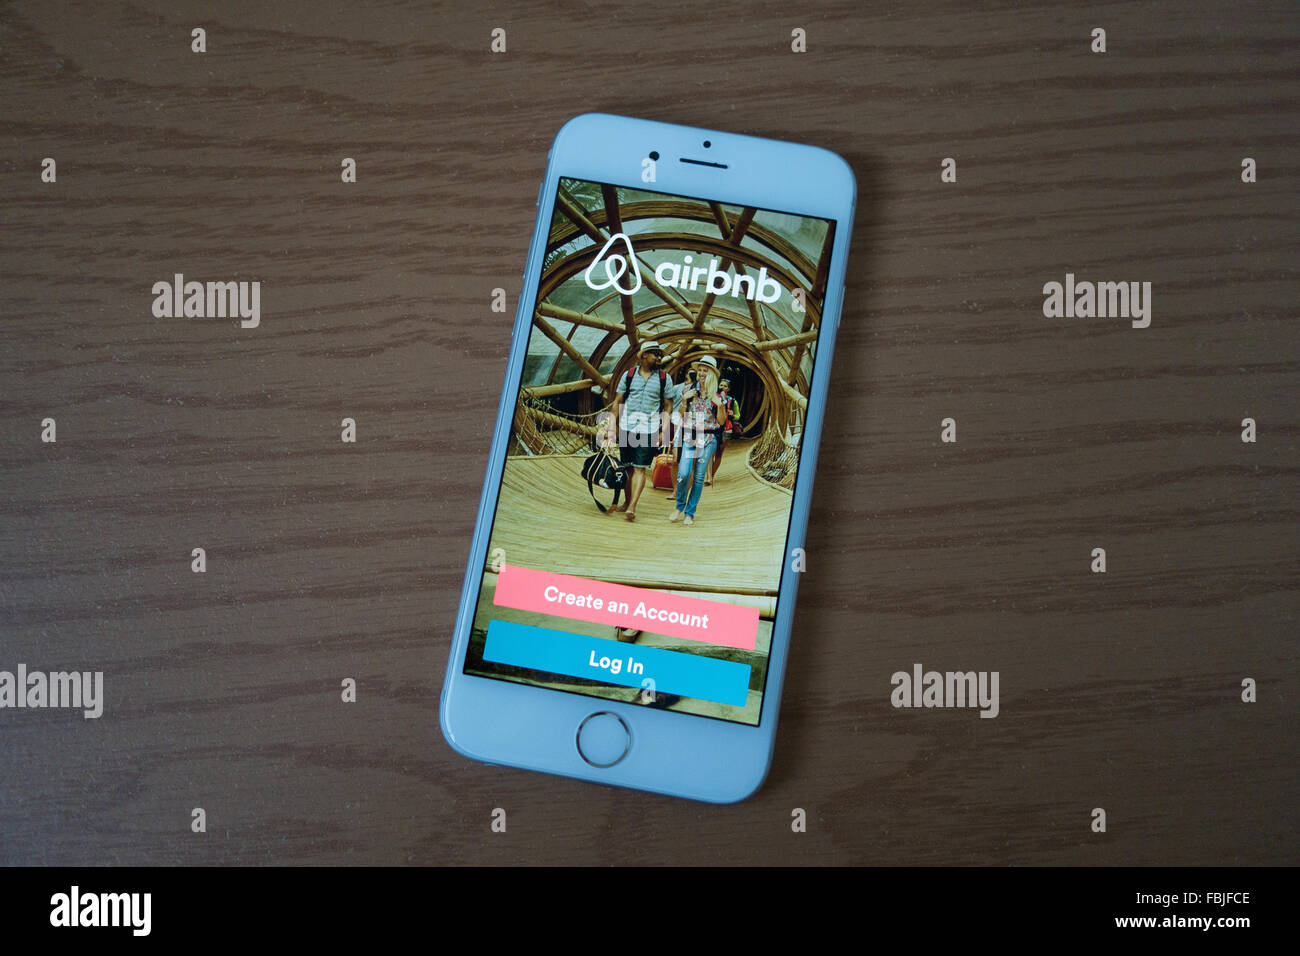 airbnb app smart phone iphone - Stock Image